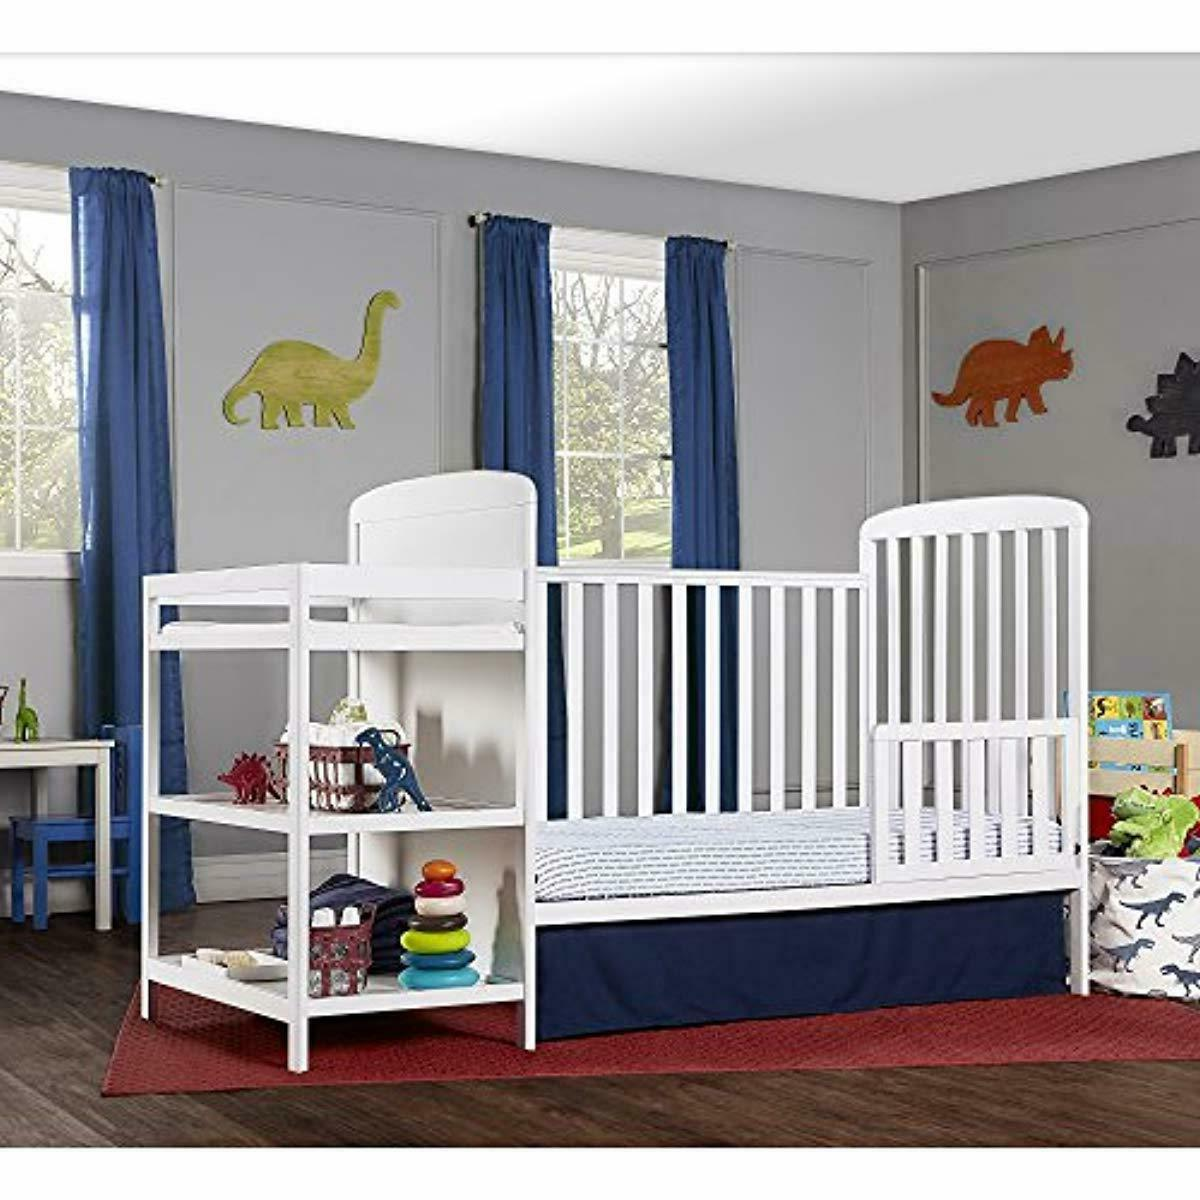 Dream Me, 4 Size Crib and Table